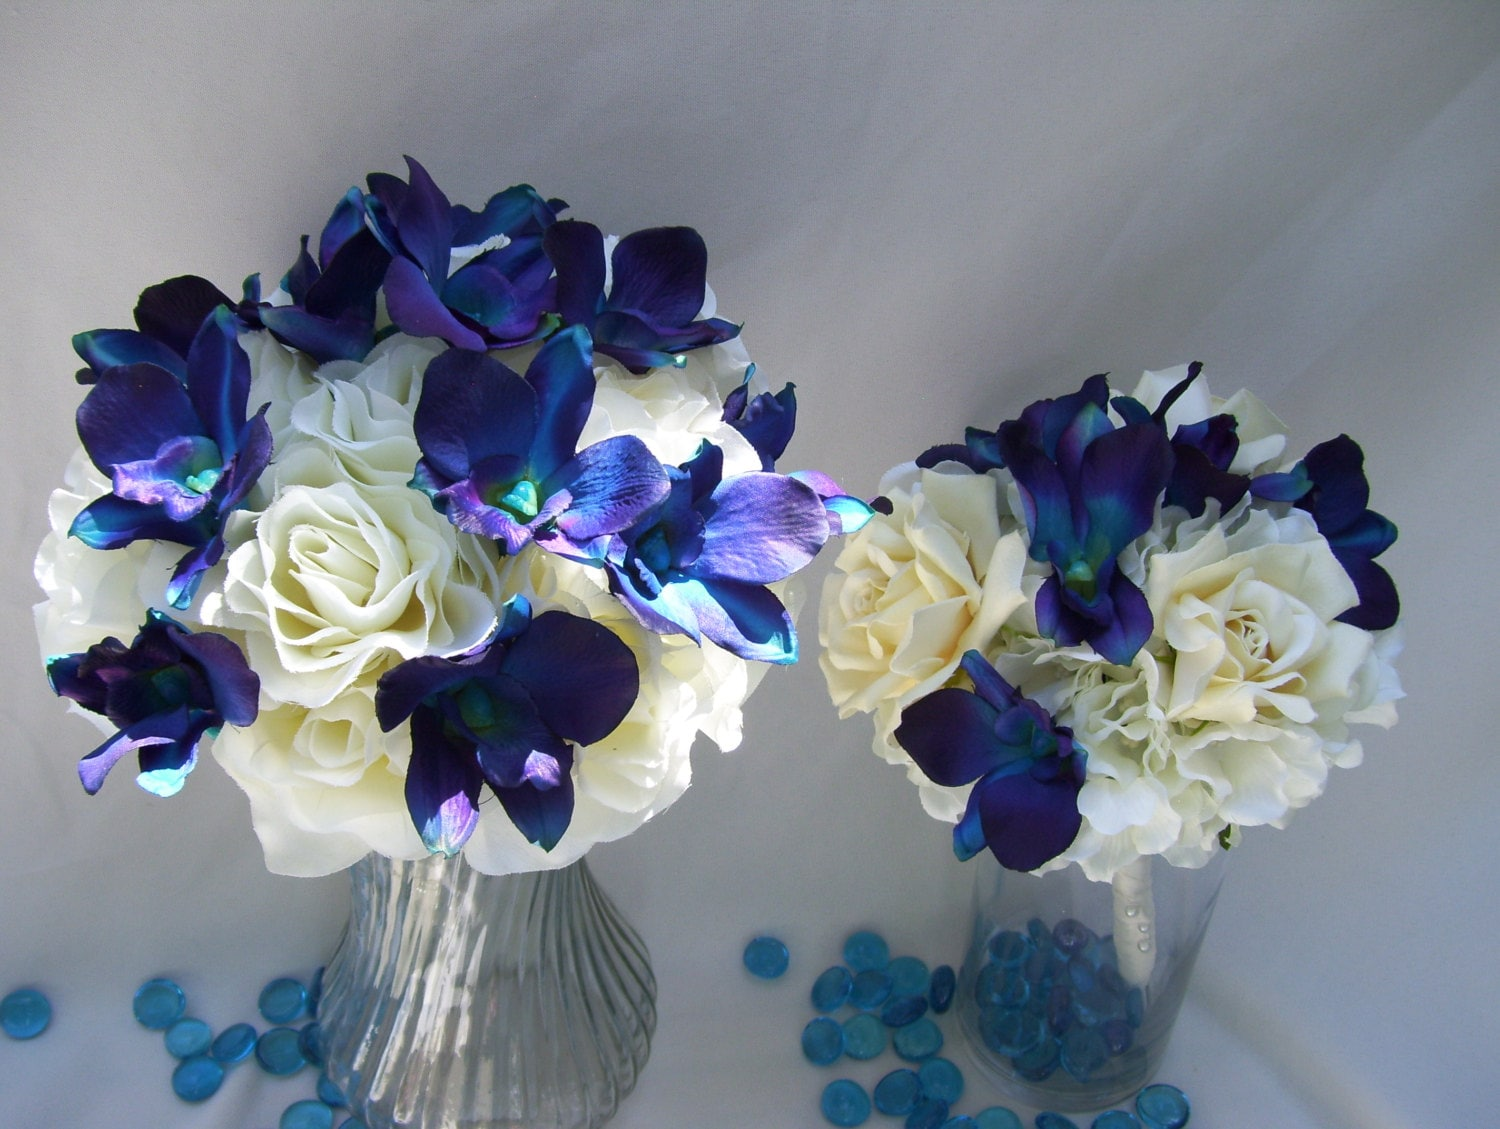 Taylor's Bridal Bouquet with Blue Violet Dendrobium